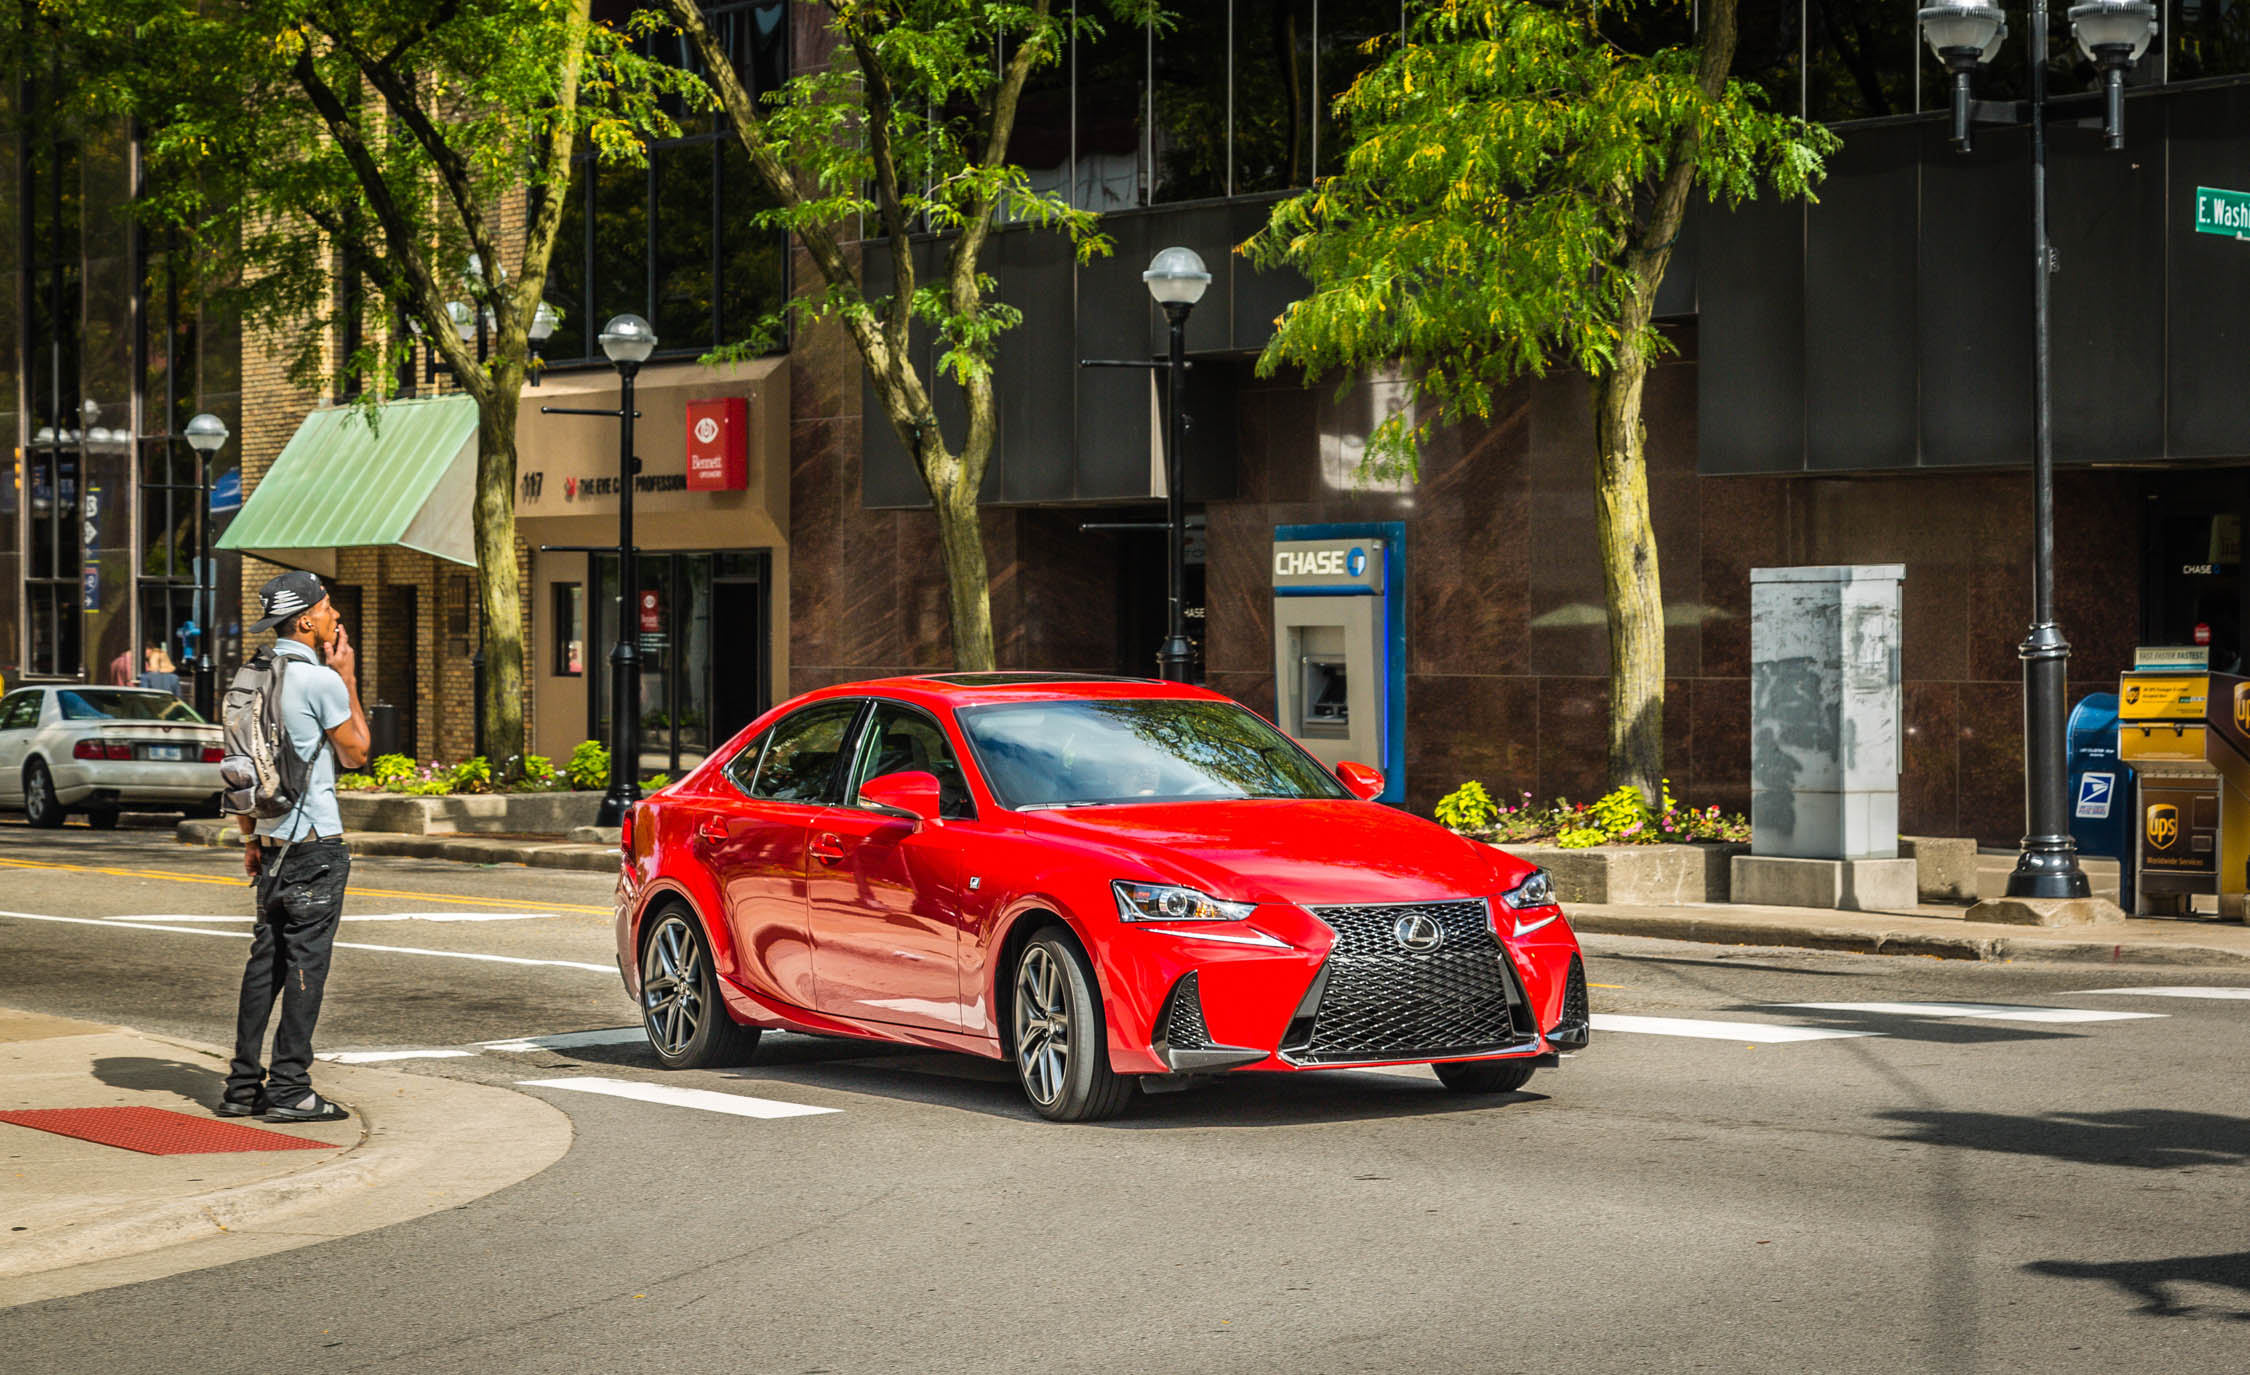 2017 Lexus IS 200t F Sport Test Drive Front And Side View (View 8 of 29)